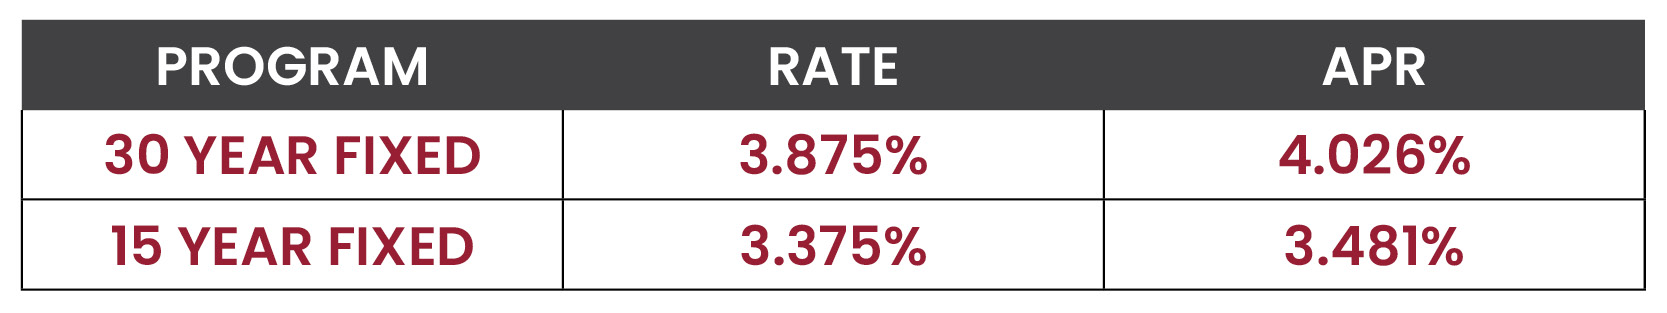 Mortgage Rate Watch Lower Rates Lowest Rates Market Update Current Mortgage Rates 2019